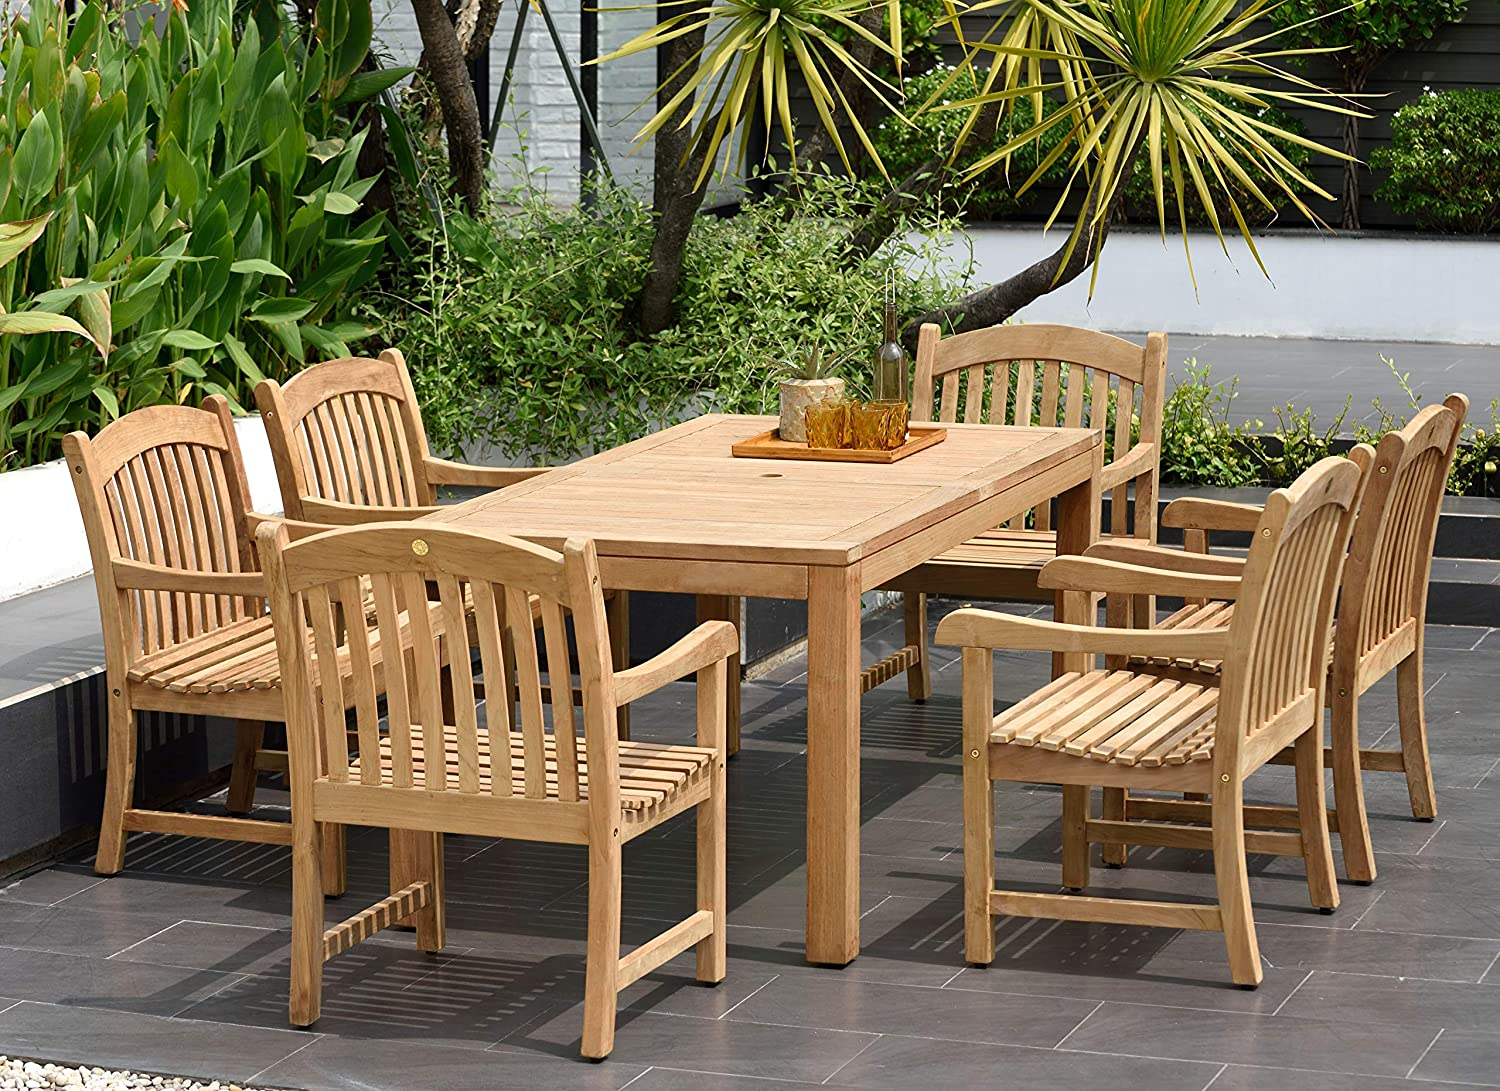 Bar Height Glass Table, Amazon Com Amazonia Pennsylvania 7 Piece Outdoor Rectangular Dining Table Set Certified Teak Ideal For Patio And Indoors Light Brown Outdoor And Patio Furniture Sets Garden Outdoor